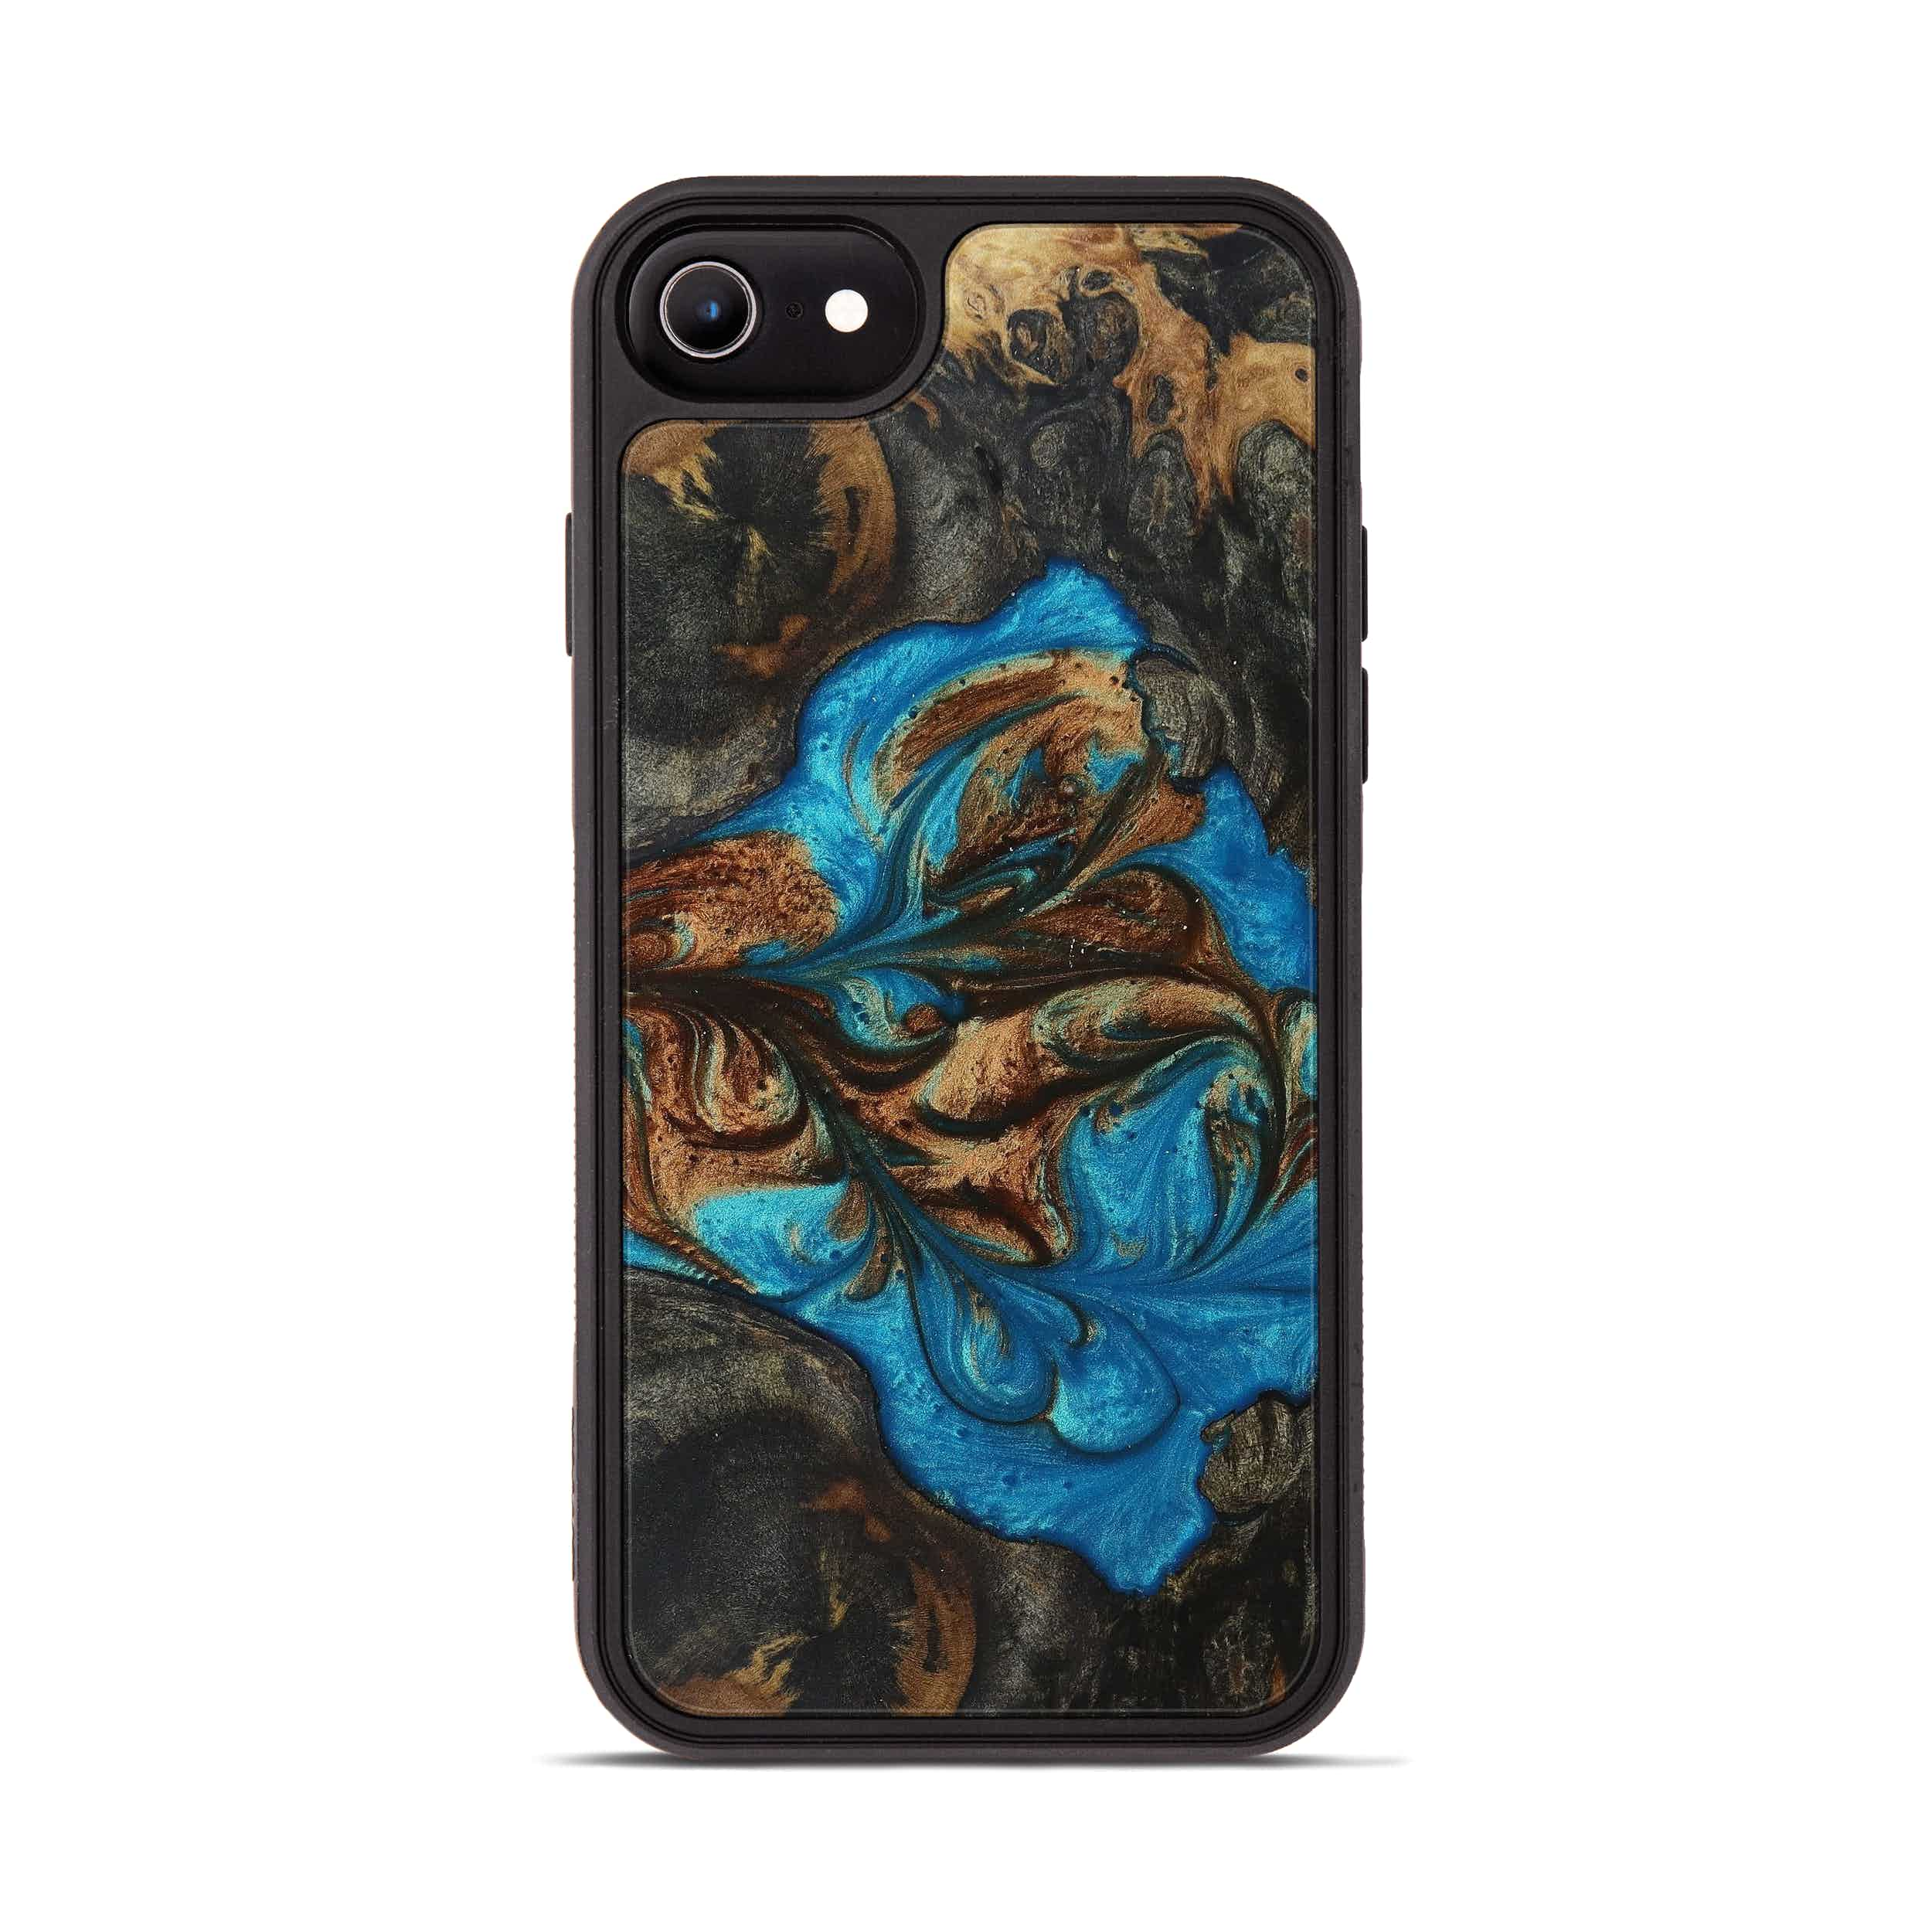 iPhone 6s Wood+Resin Phone Case - Viera (Teal & Gold, 397222)